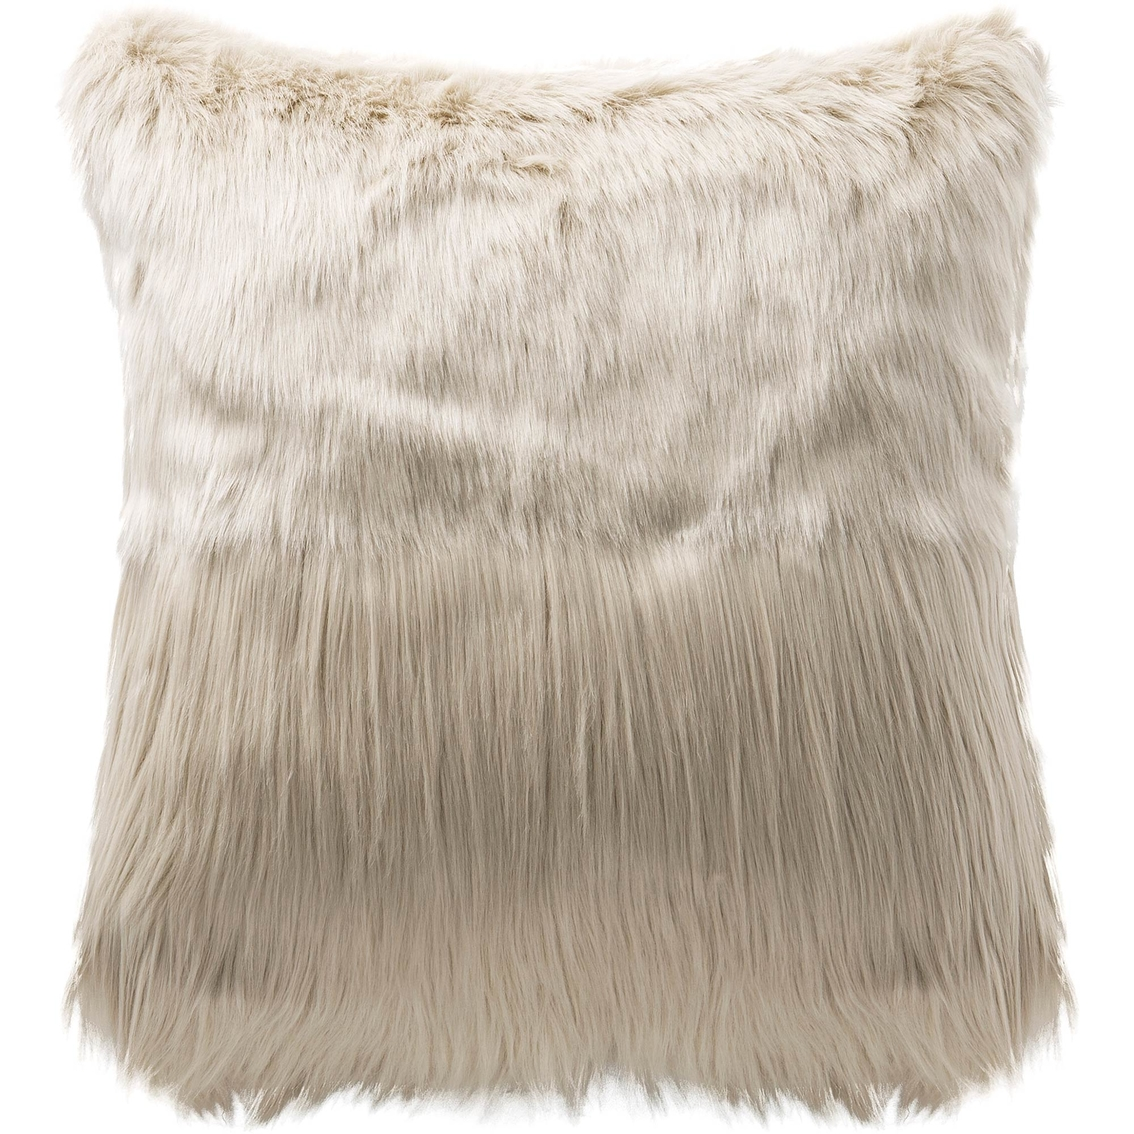 Highline Bedding Co Madrid 18 X 18 In Fur Decorative